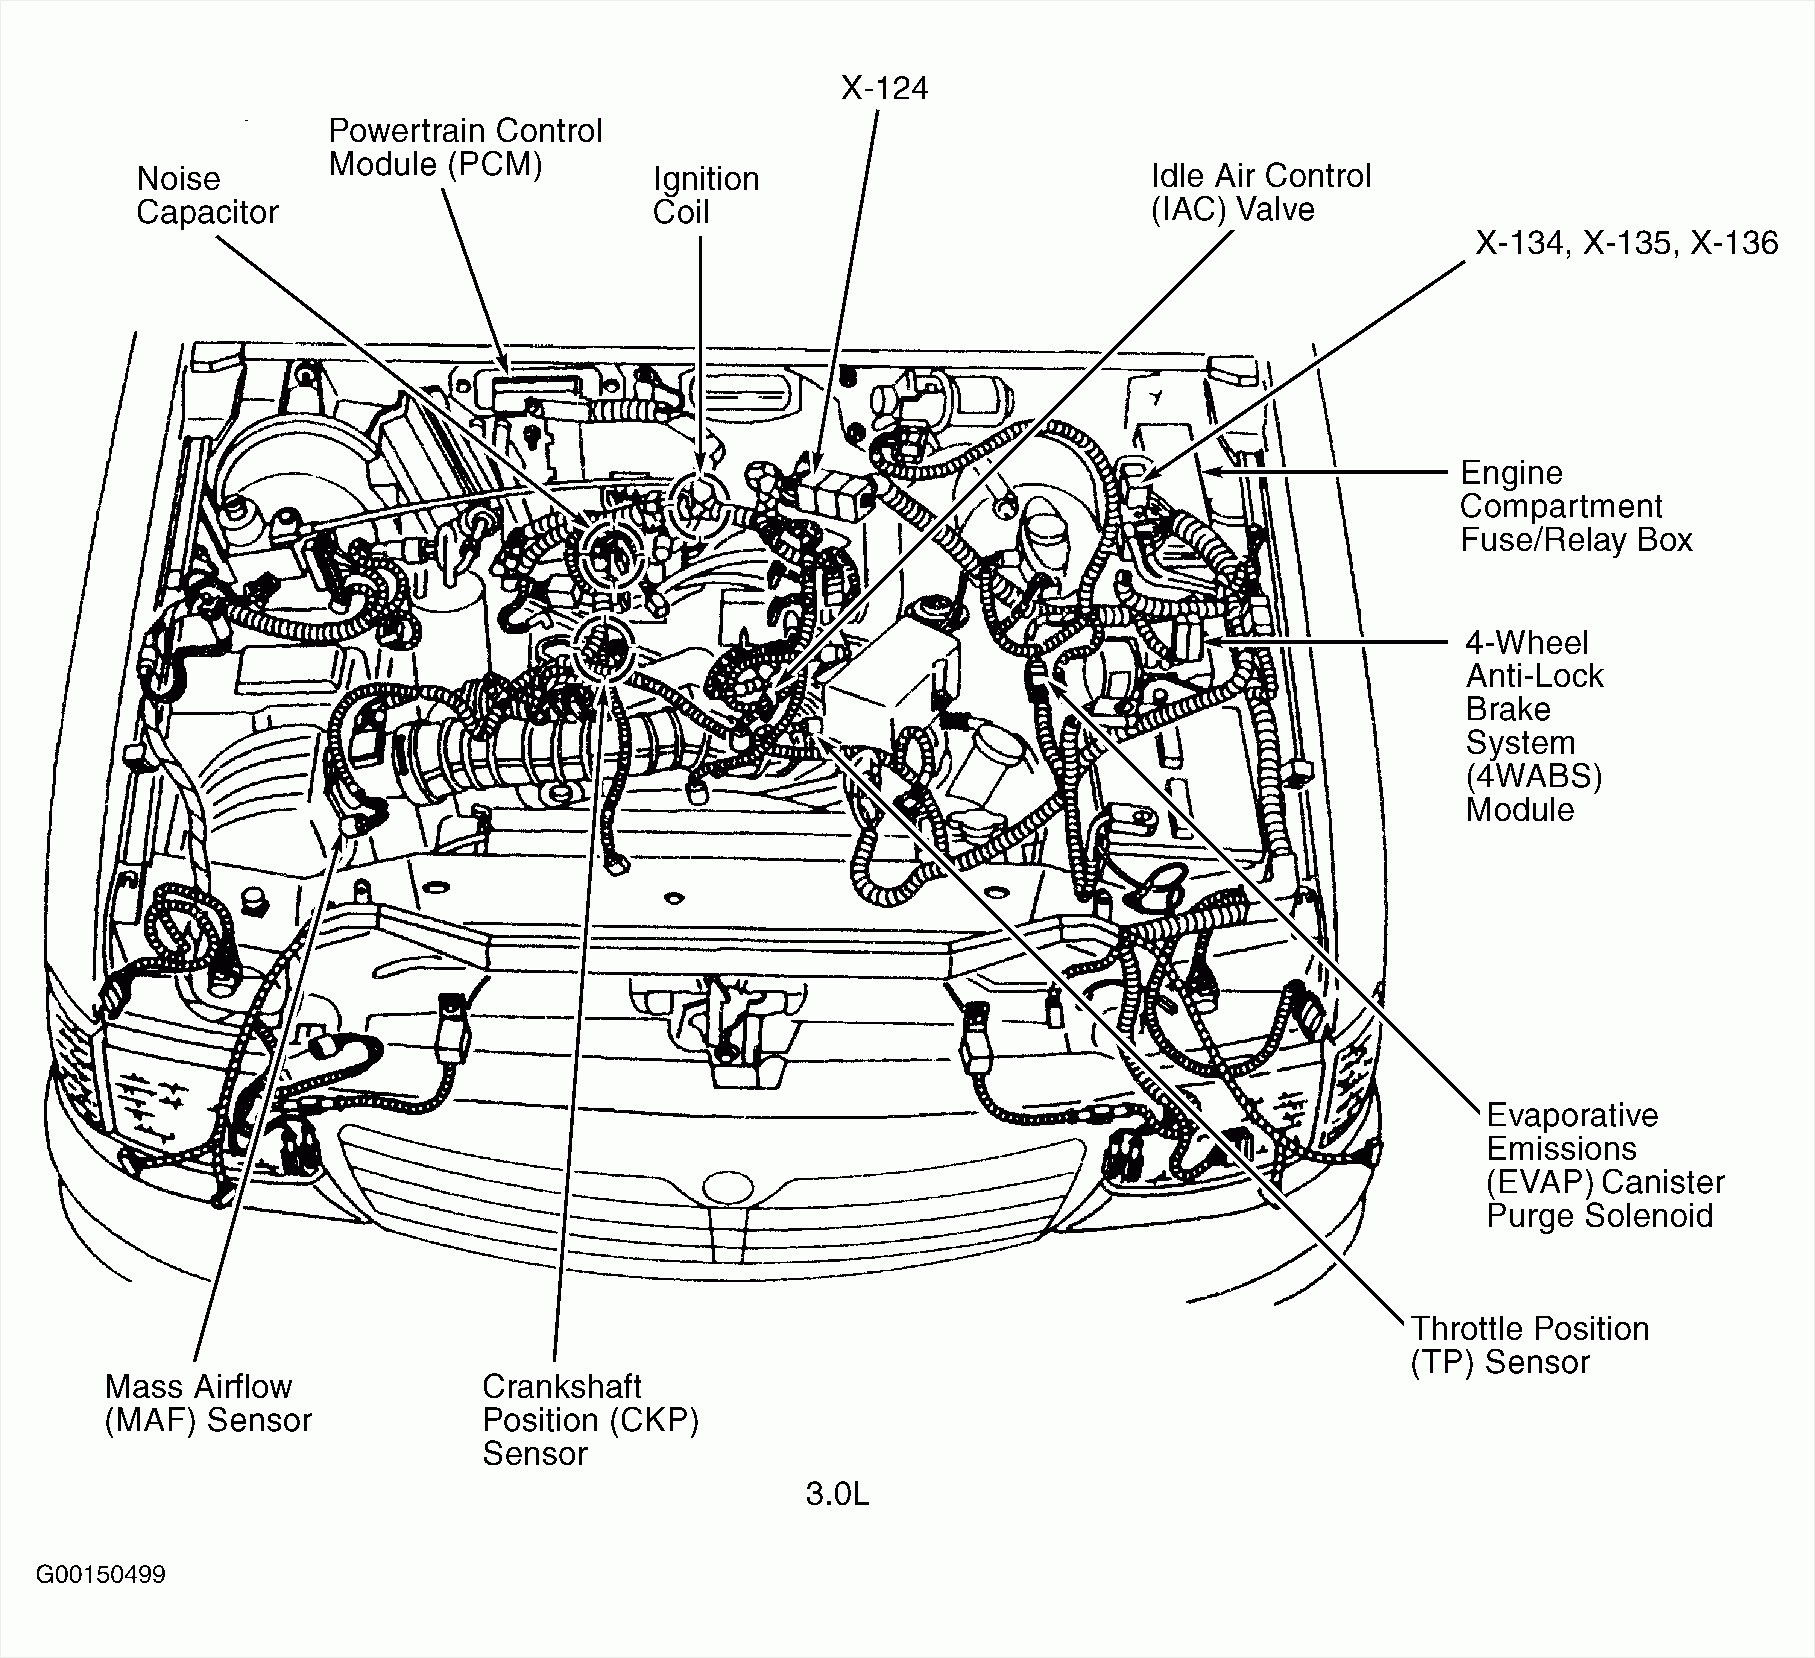 2001 Saturn Sl2 Dohc Engine Diagram Reinvent Your Wiring 3 0 U2022 Rh Kismetcars Co Uk 97 Parts